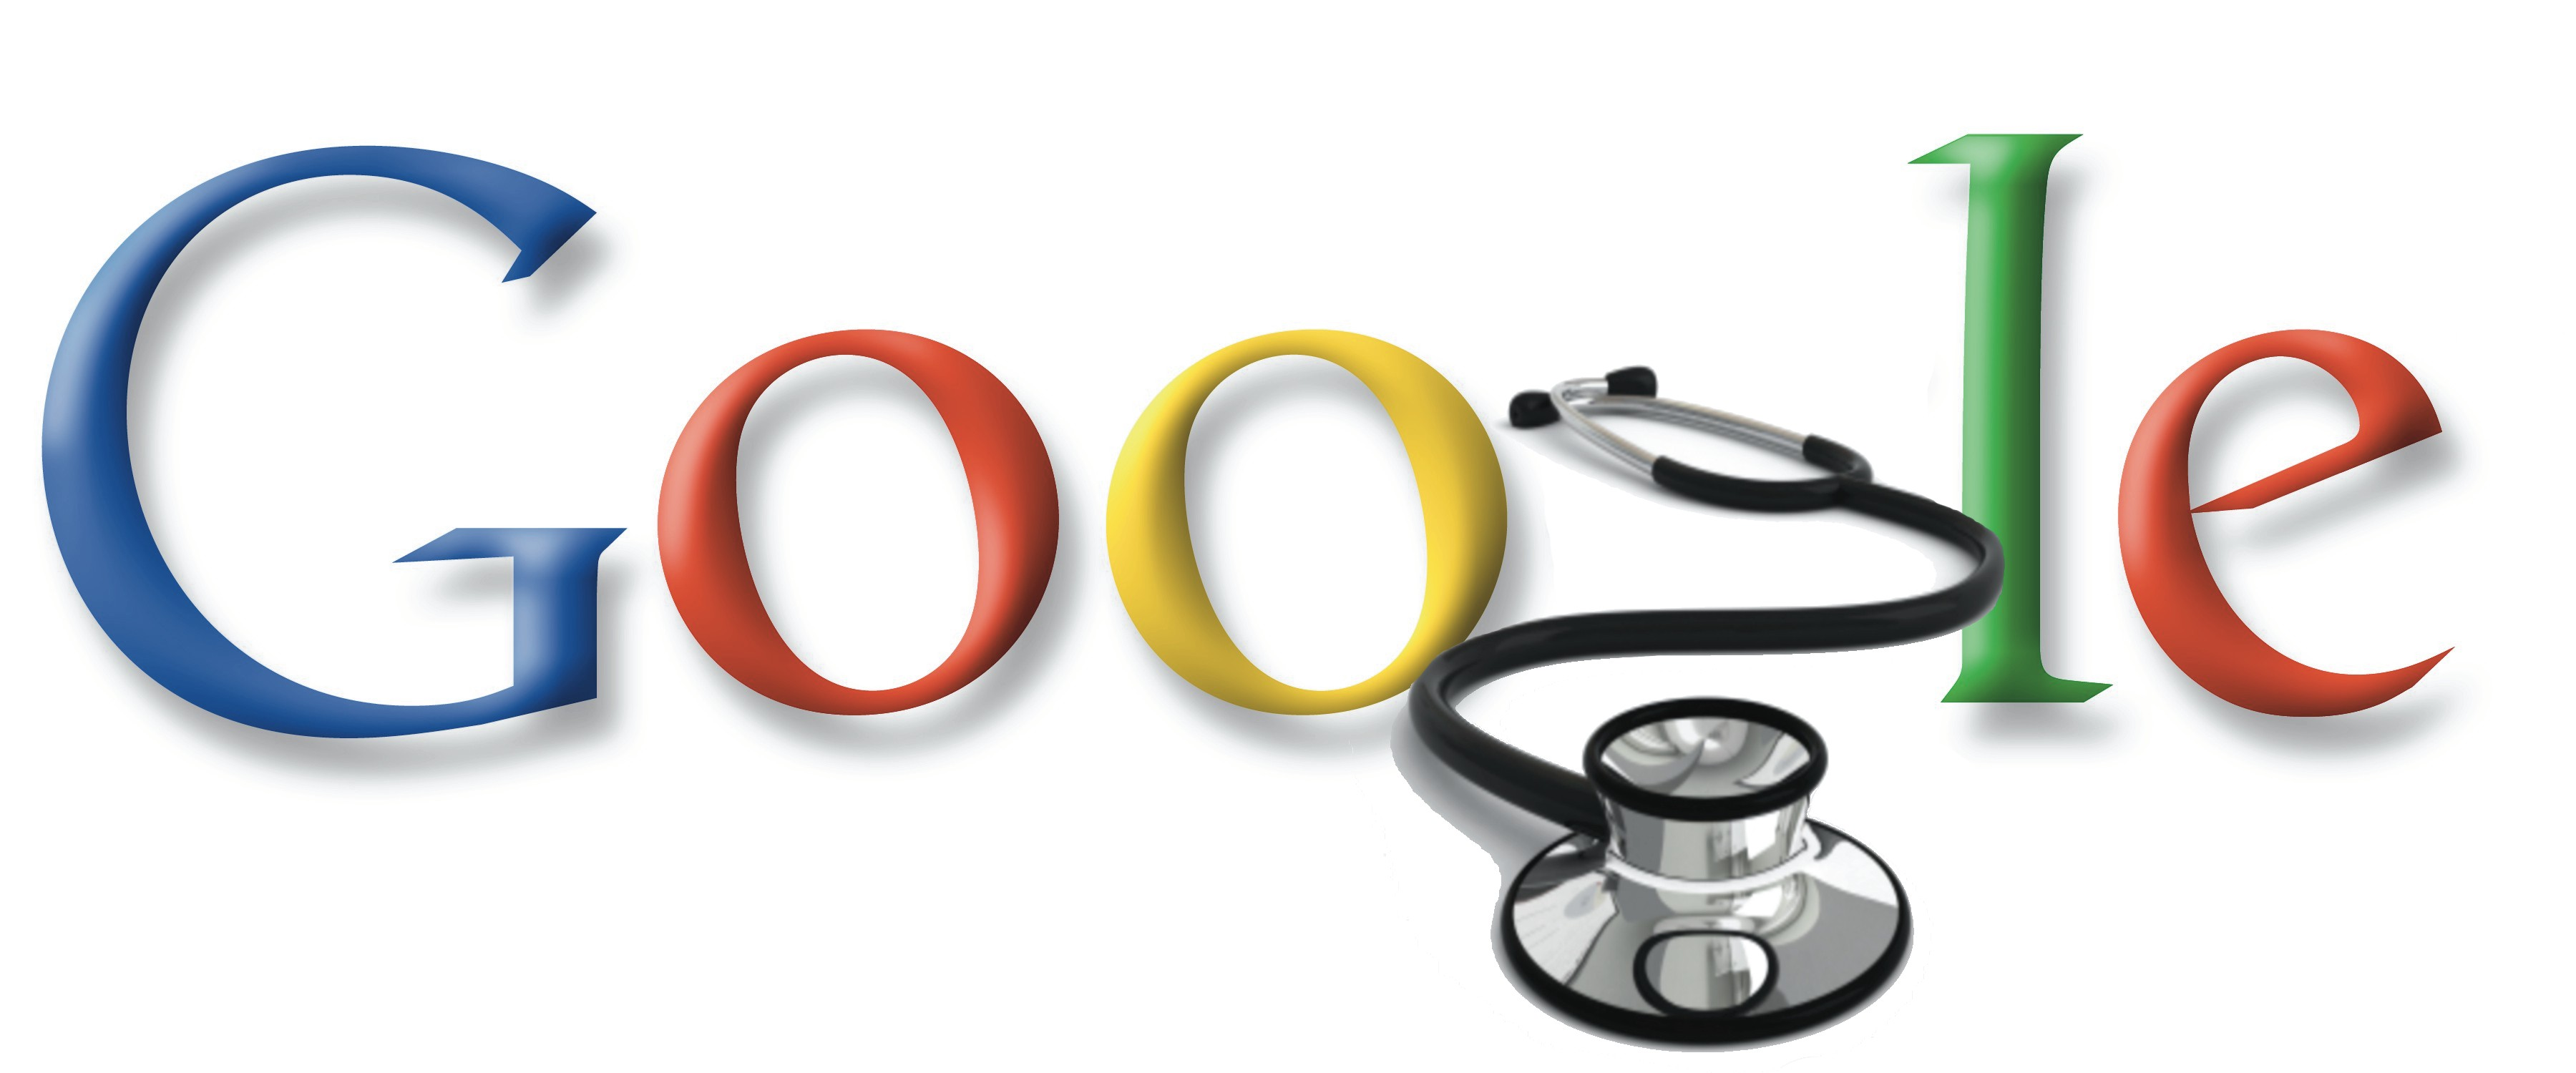 Google is investing heavily in the healthcare sector